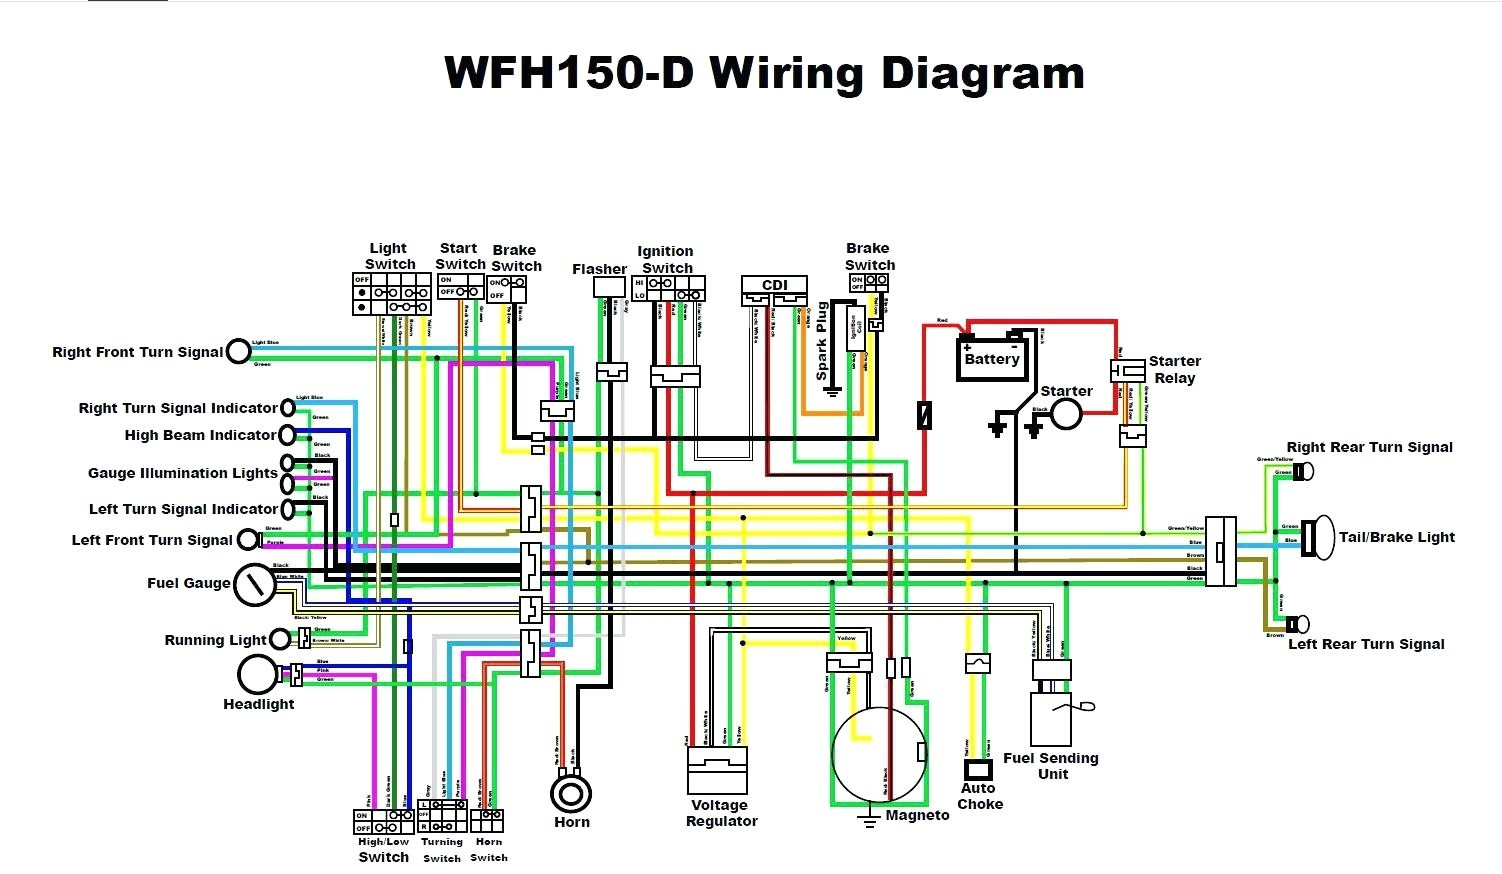 yamaha outboard key switch wiring diagram 50cc scooter key switch wiring diagram pride maxima wiring diagram - wiring diagram